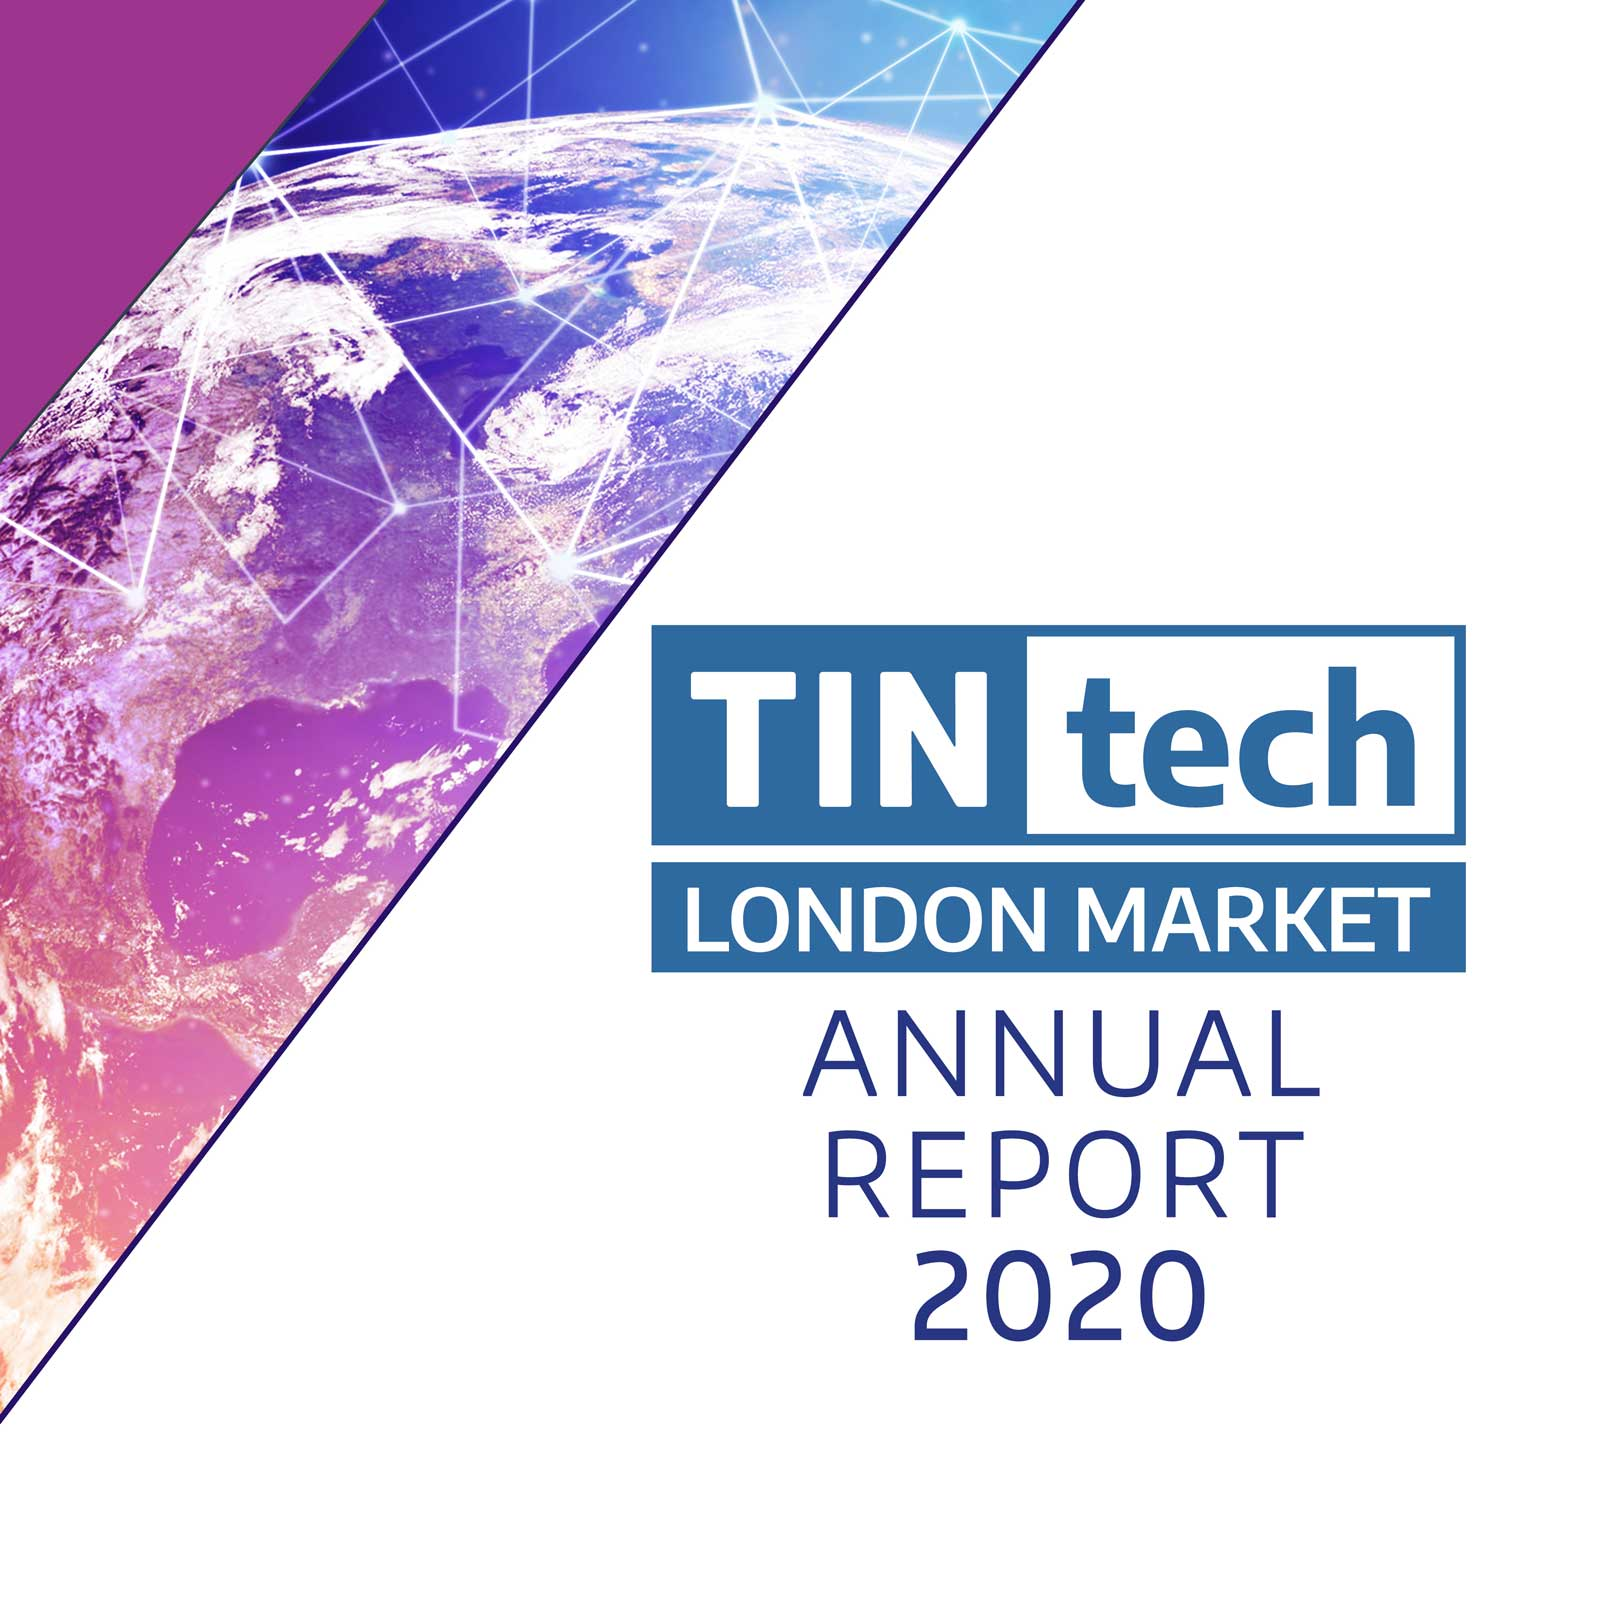 TINtech London Market 2020 Annual Report